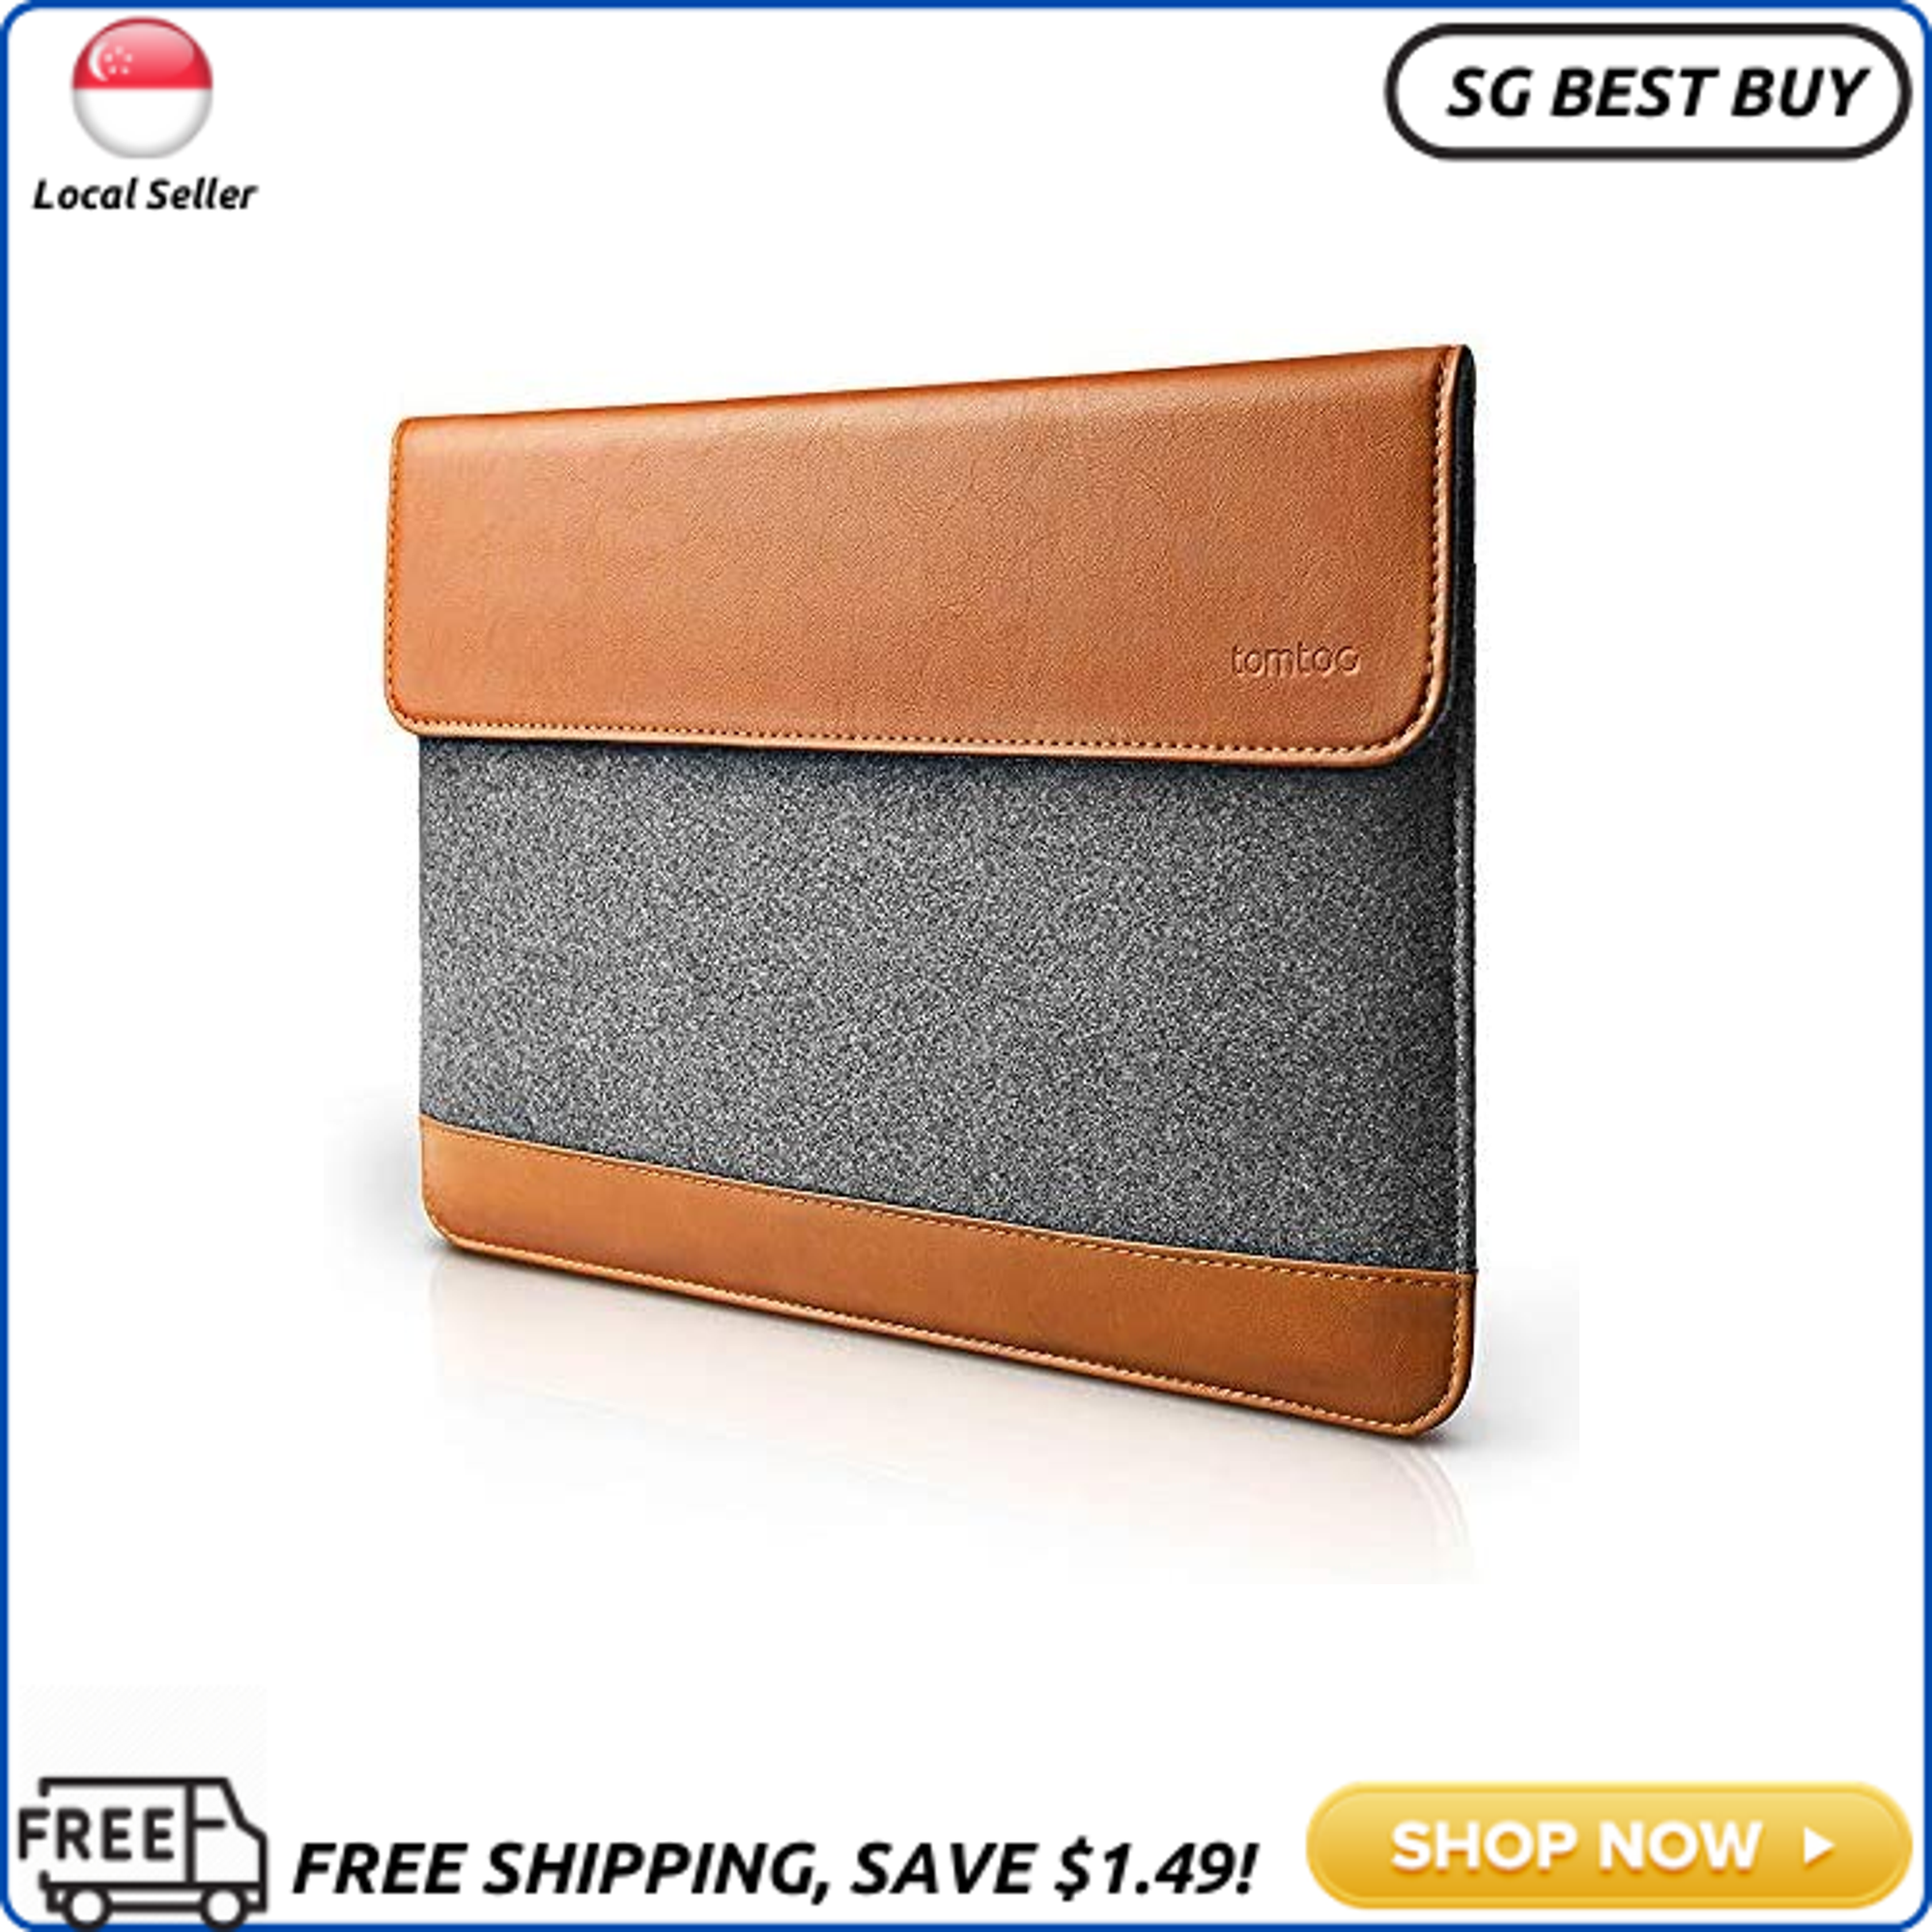 (SG SELLER) tomtoc Slim Laptop Sleeve for 15 Inch New MacBook Pro with Touch Bar Late 2016-2019 A1990 A1707, Felt & PU Leather Protective Case Cover Bag with Accessory Pocket